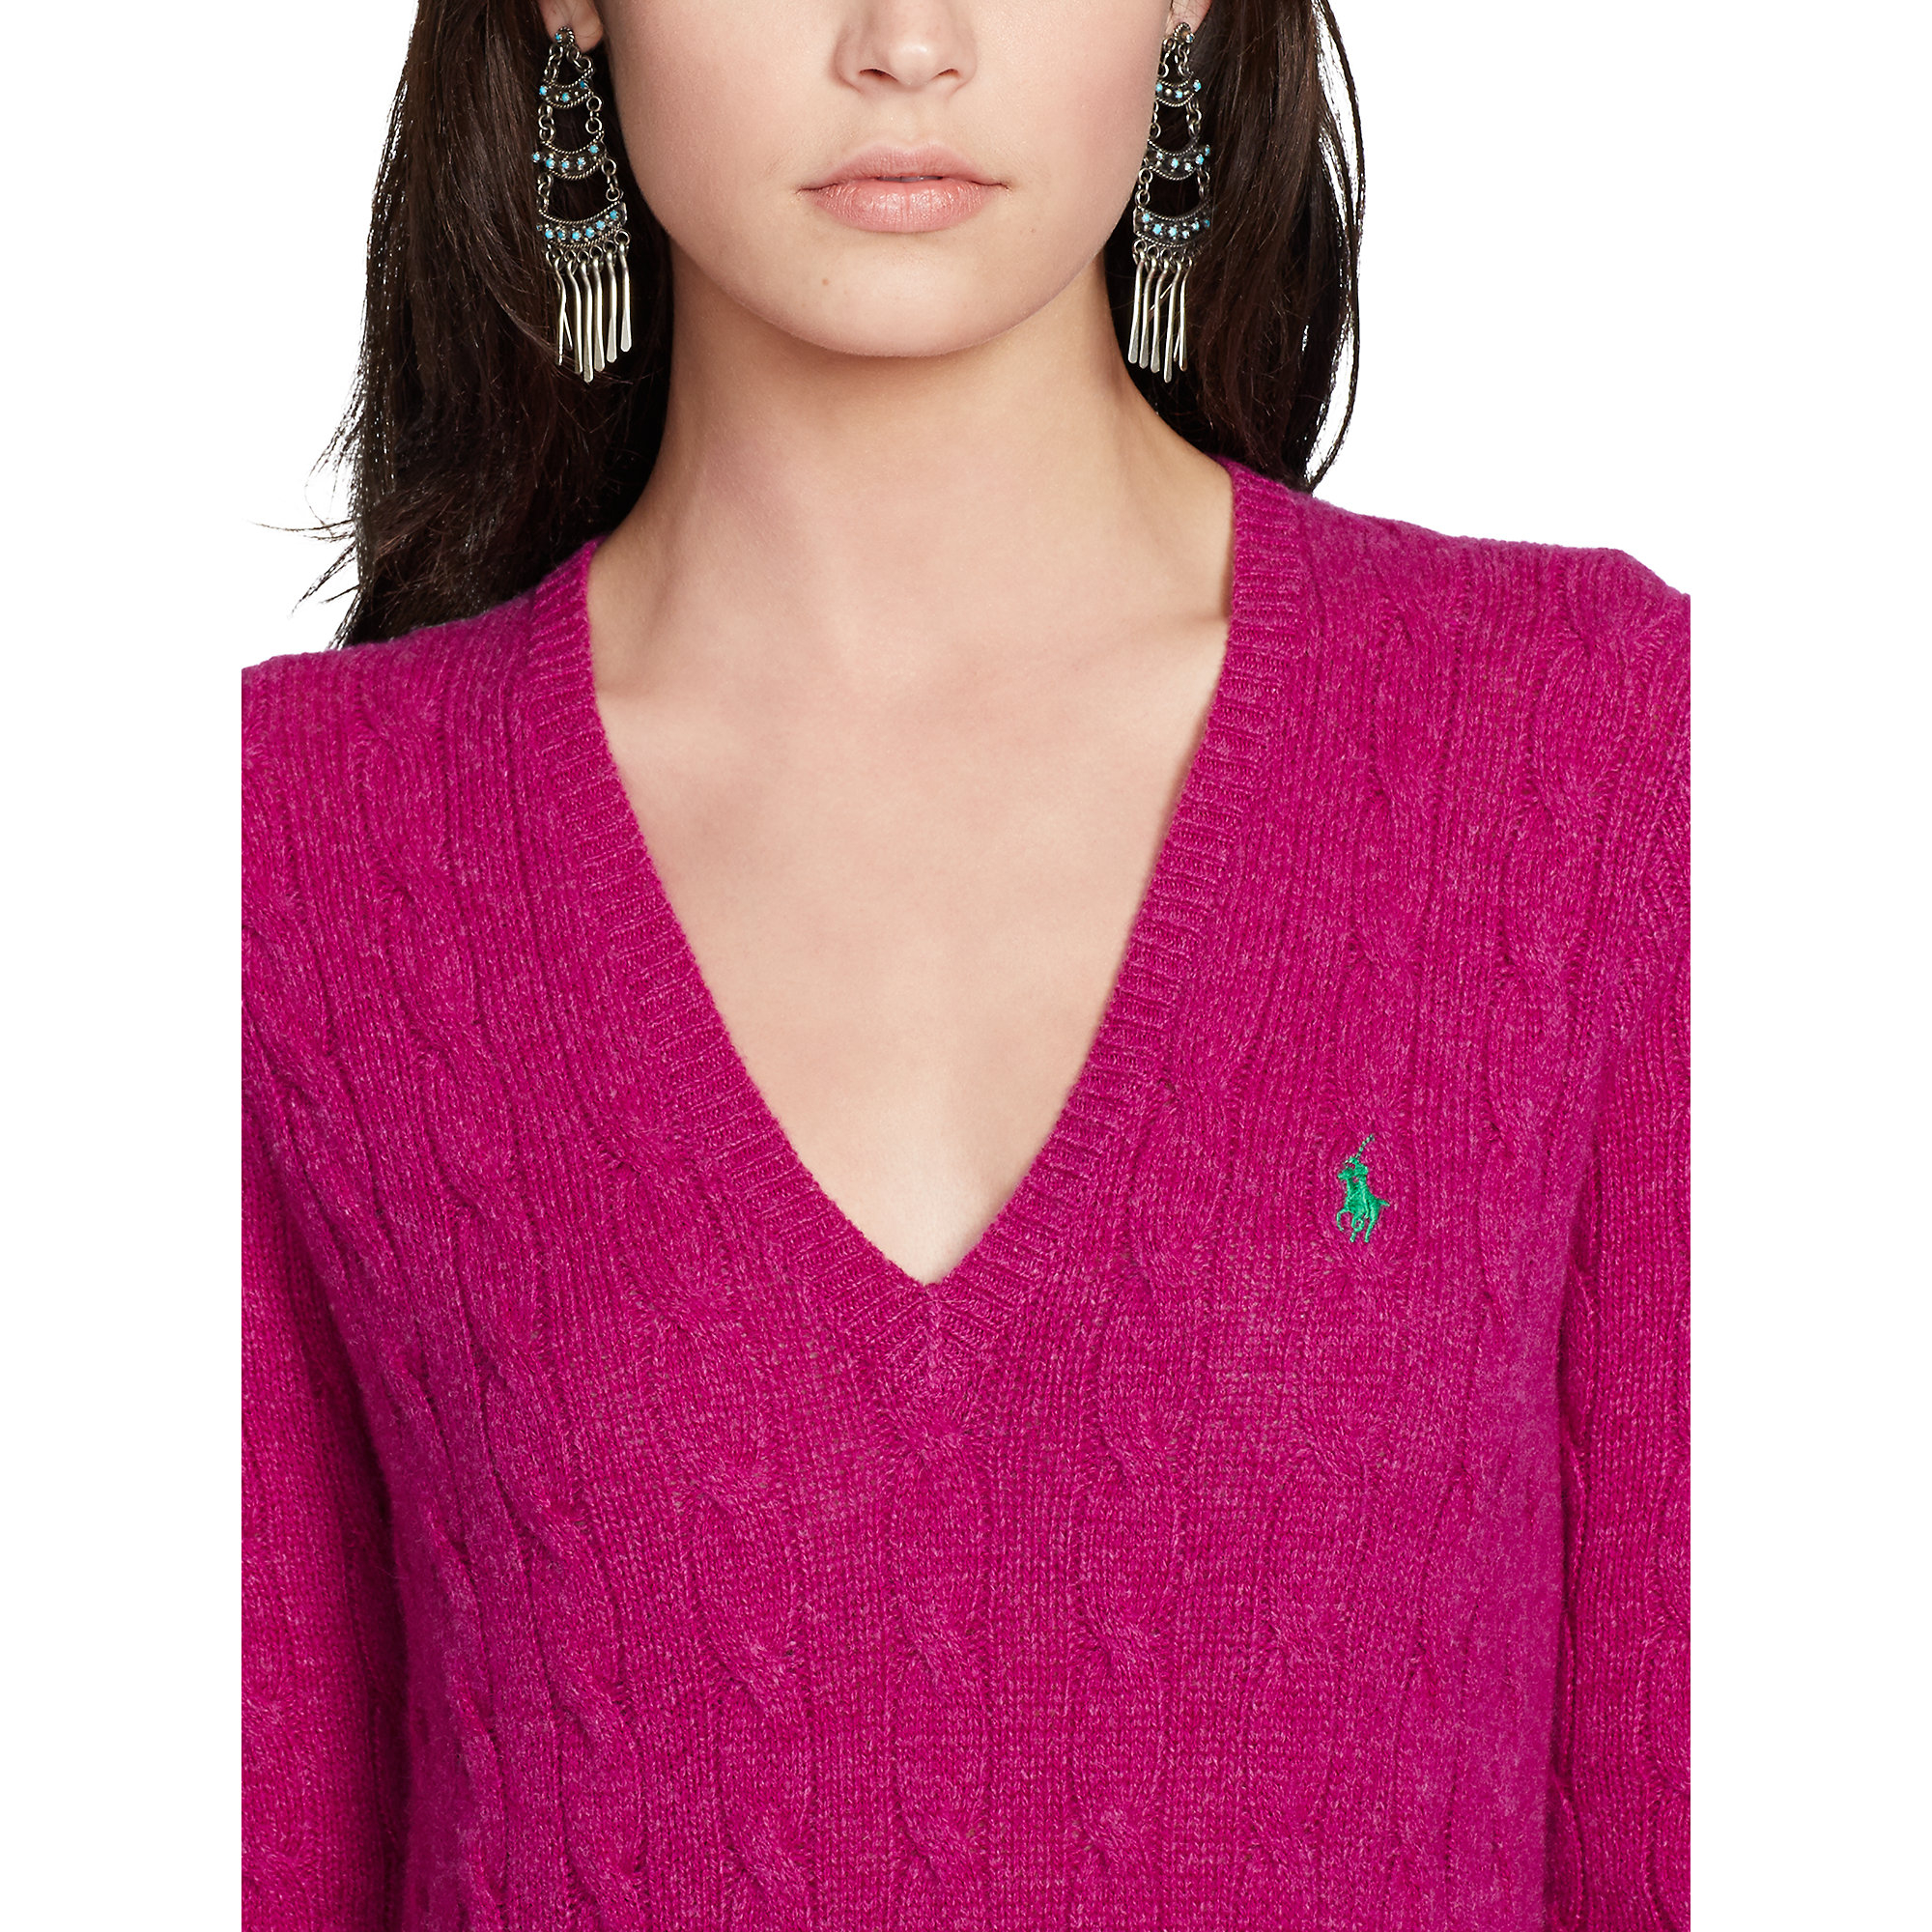 cbdb8efcf5c1a Lyst - Polo Ralph Lauren Cable-Knit V-Neck Sweater in Purple